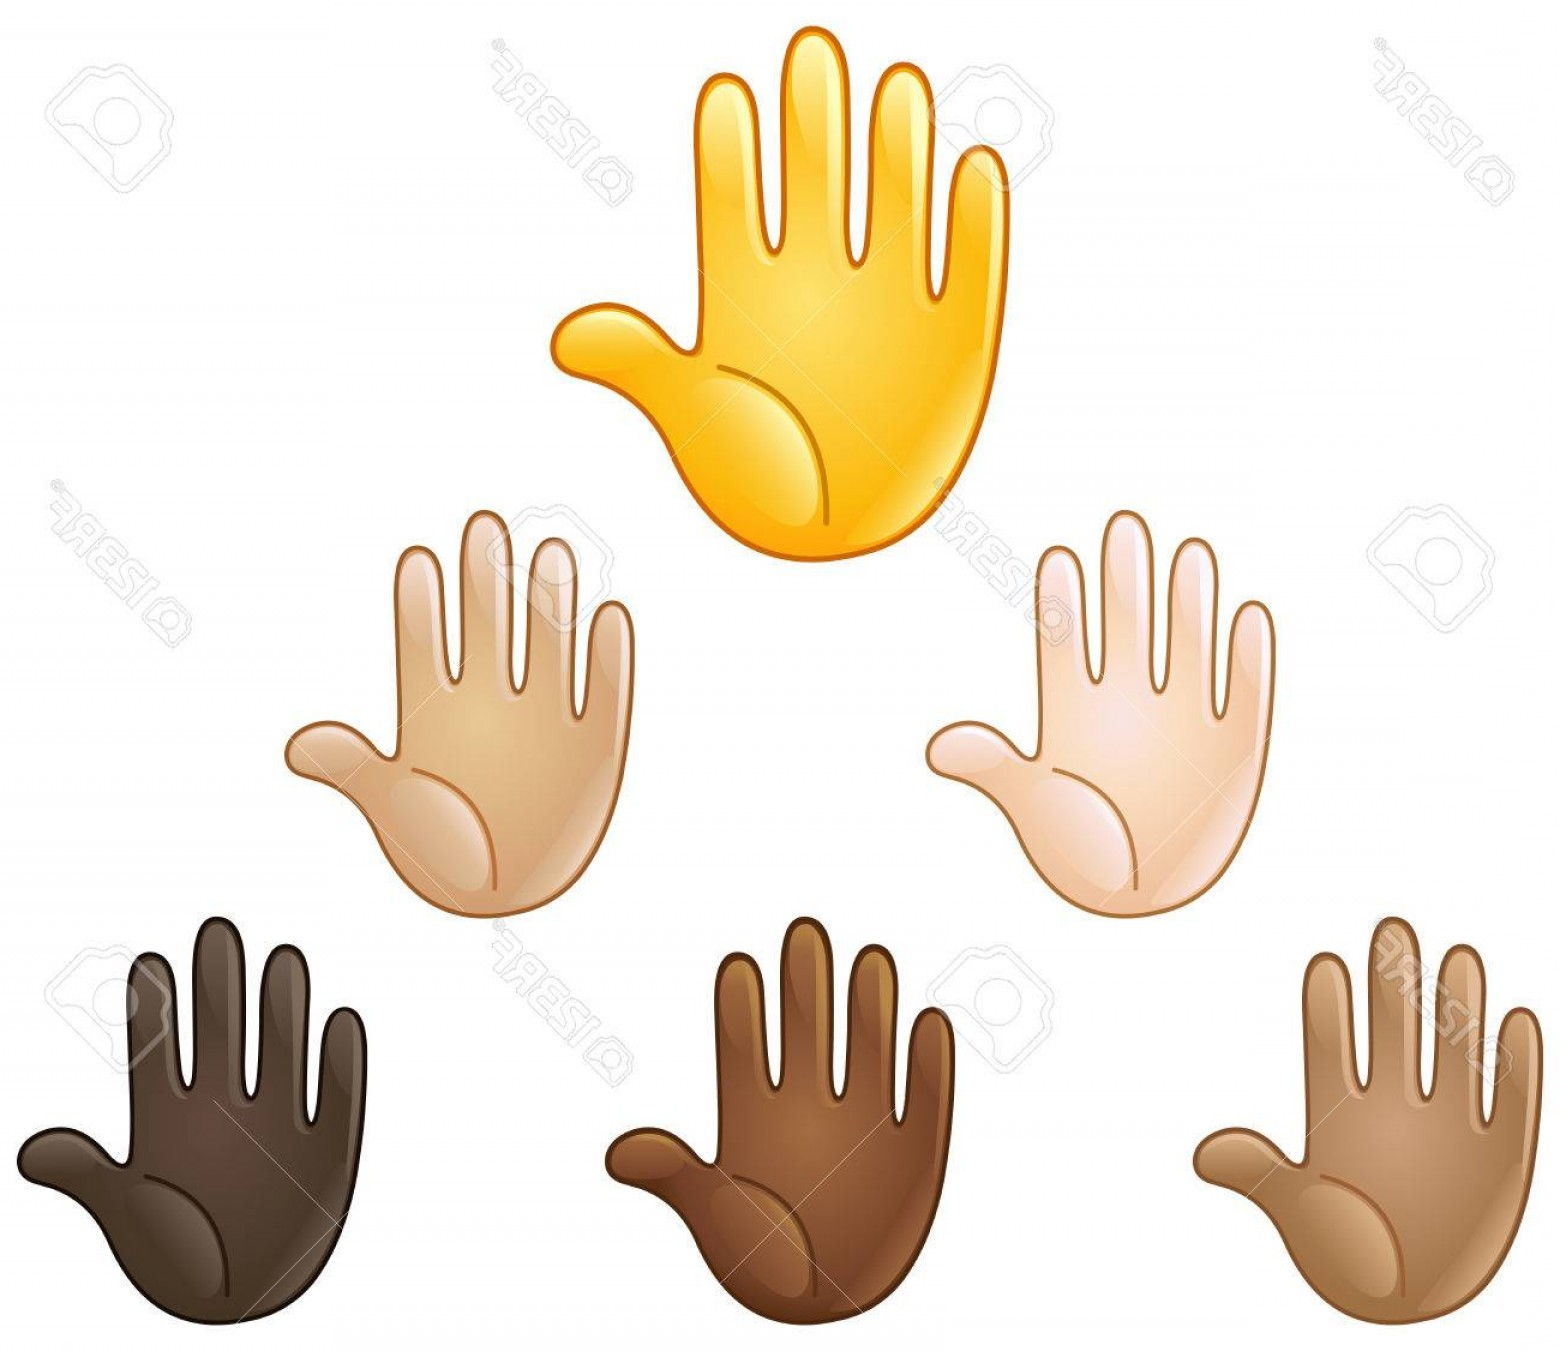 Emoji Fist Bump Vector Graphic: Photostock Vector Raised Hand Emoji Of Various Skin Tones Stop Or High Five Sign